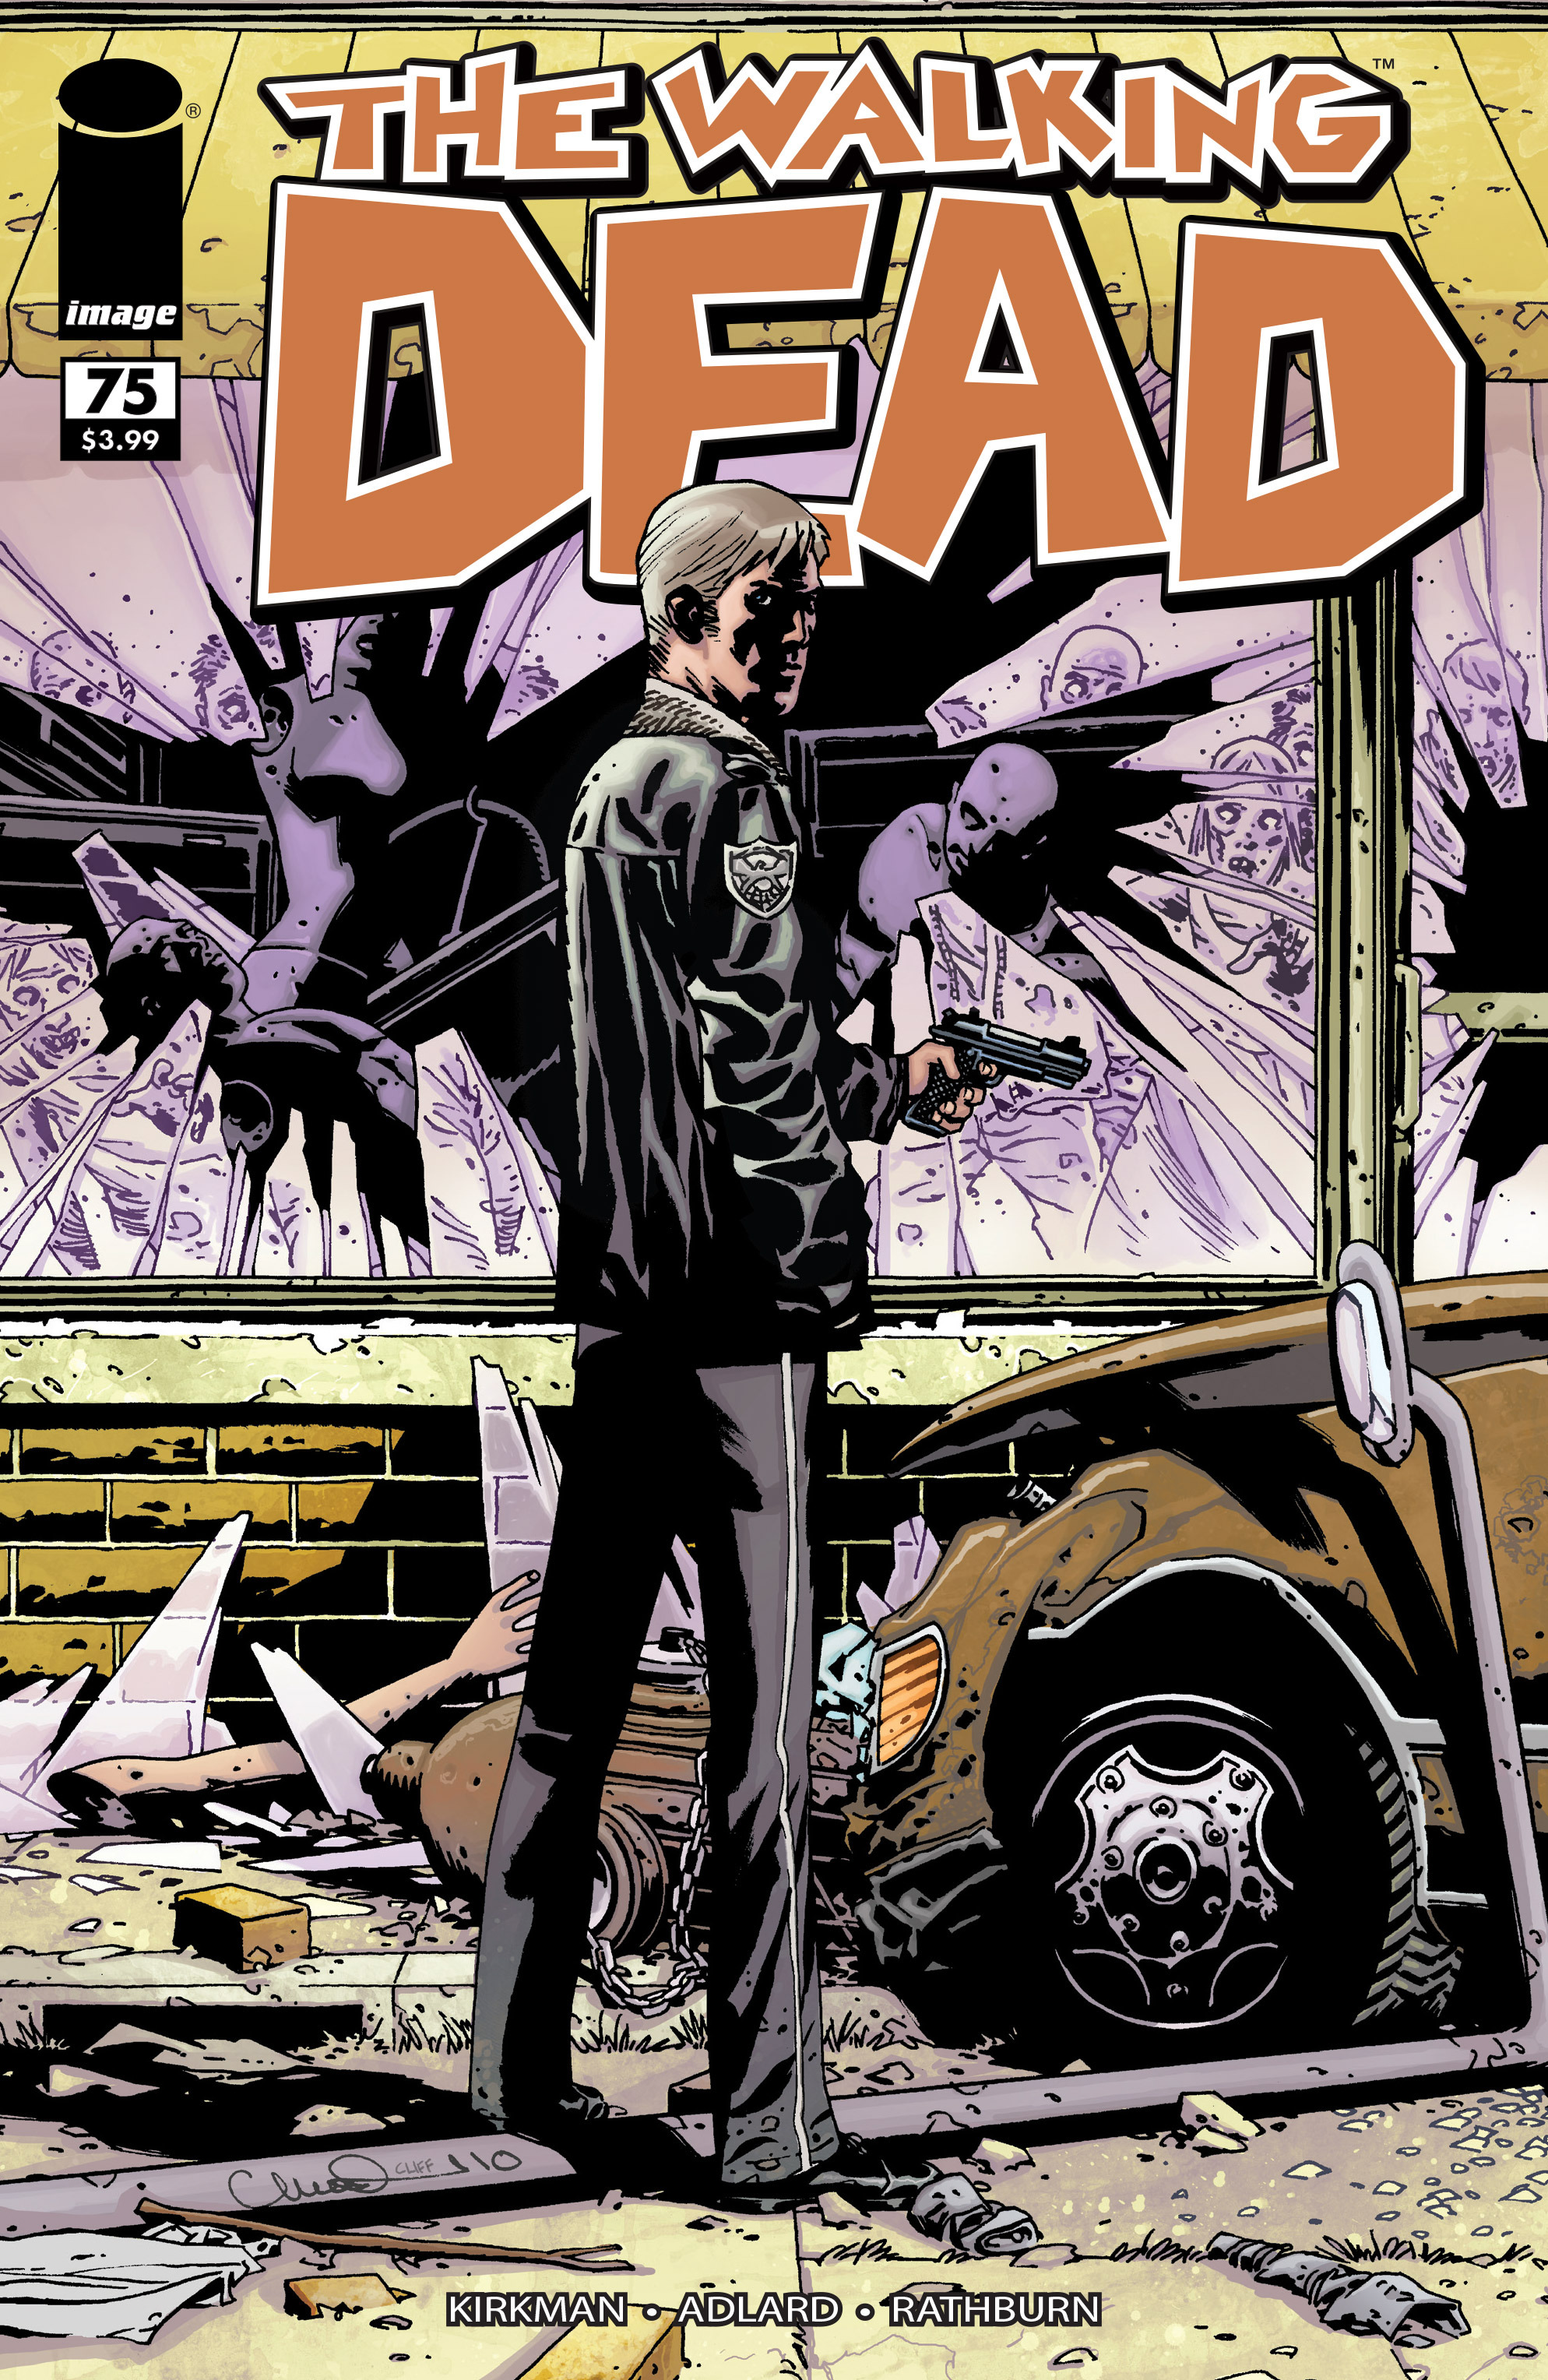 The Walking Dead 75 Page 1